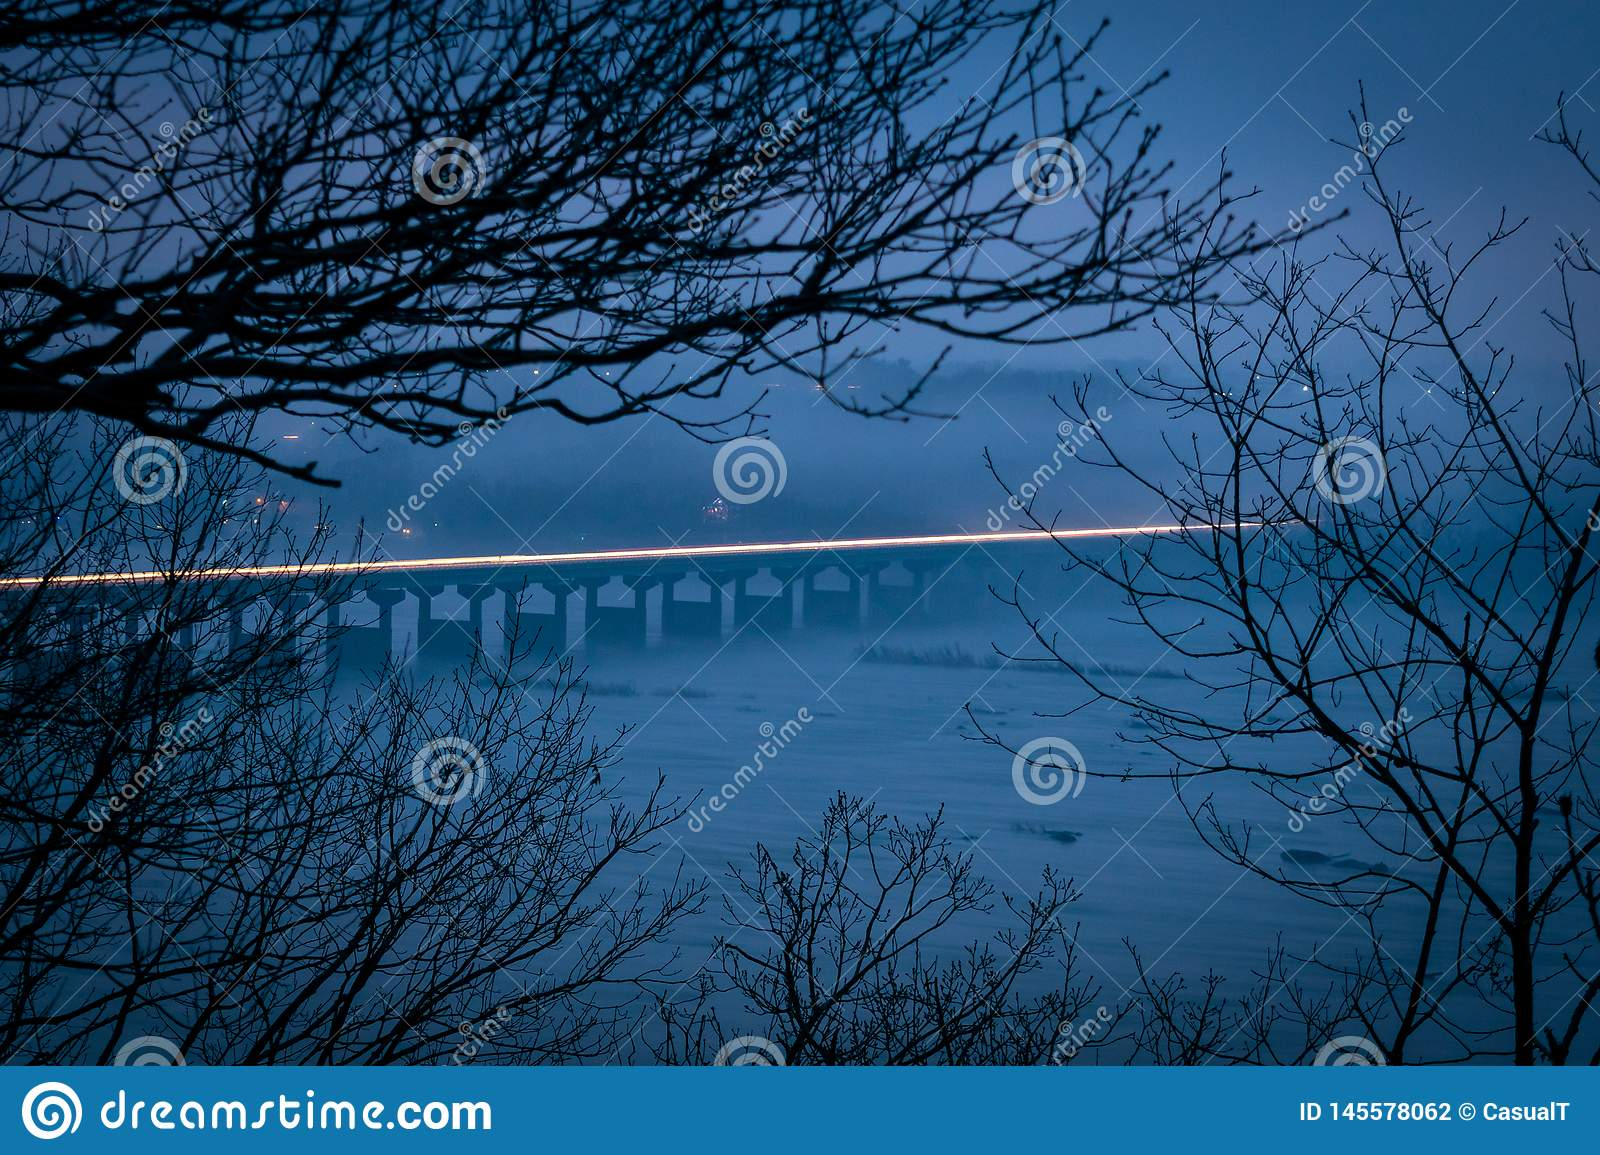 Light trail across the Susquehanna River Bridge, in the evening hours on a misty and foggy day, Columbia County, PA